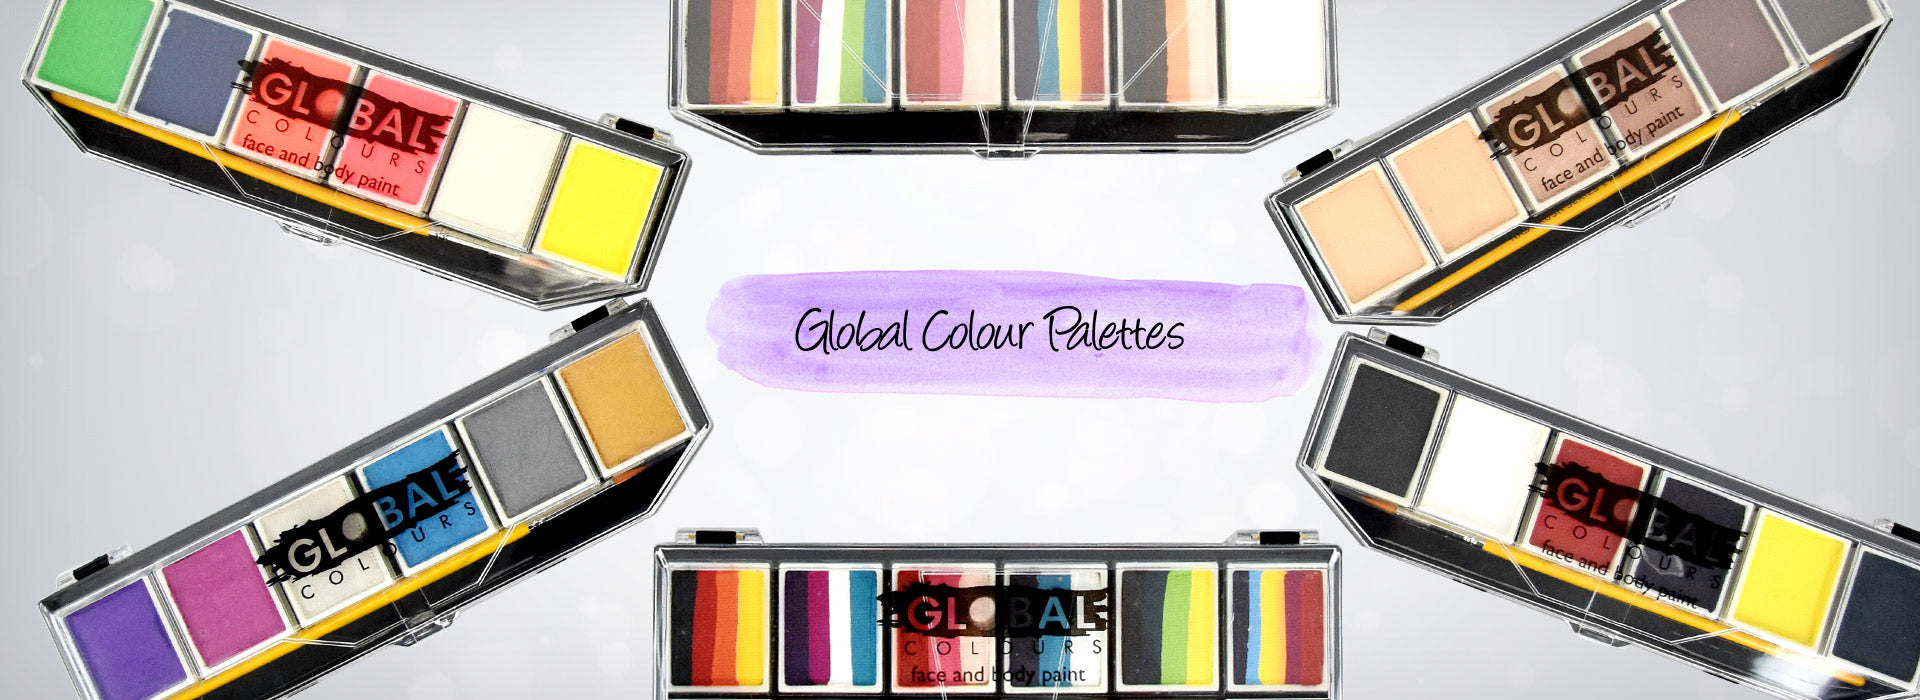 Global Colours Palettes